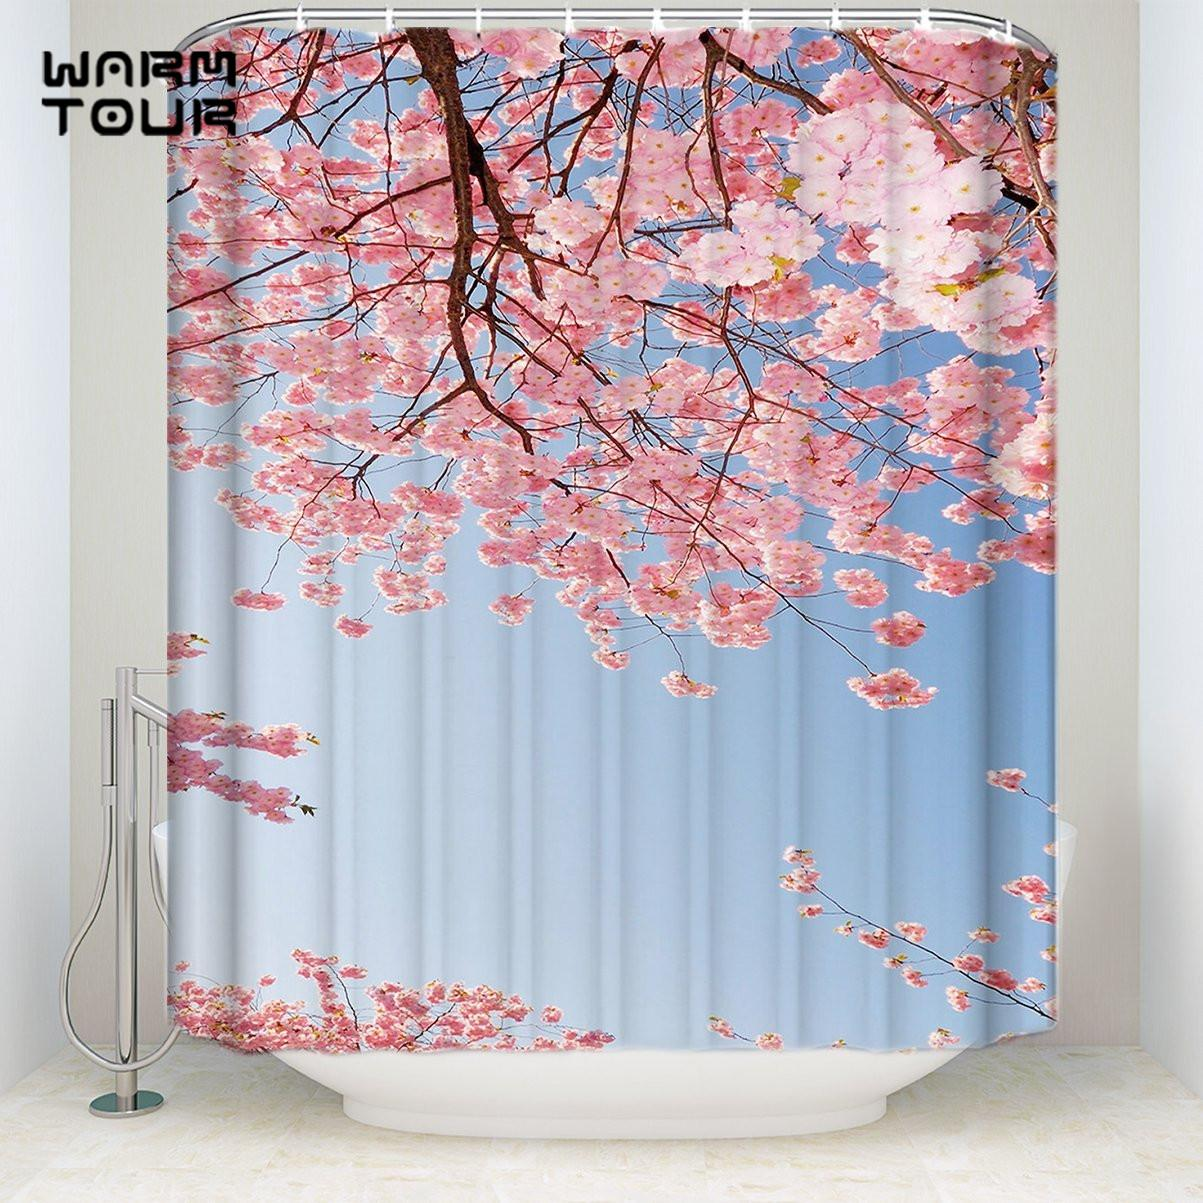 2018 Bath Shower Curtains 48 X 72 Inches Beautiful Sakura Cheery Blossom Sky Mildew Resistant Bathroom Decor Sets With Hooks From Huweilan 2706